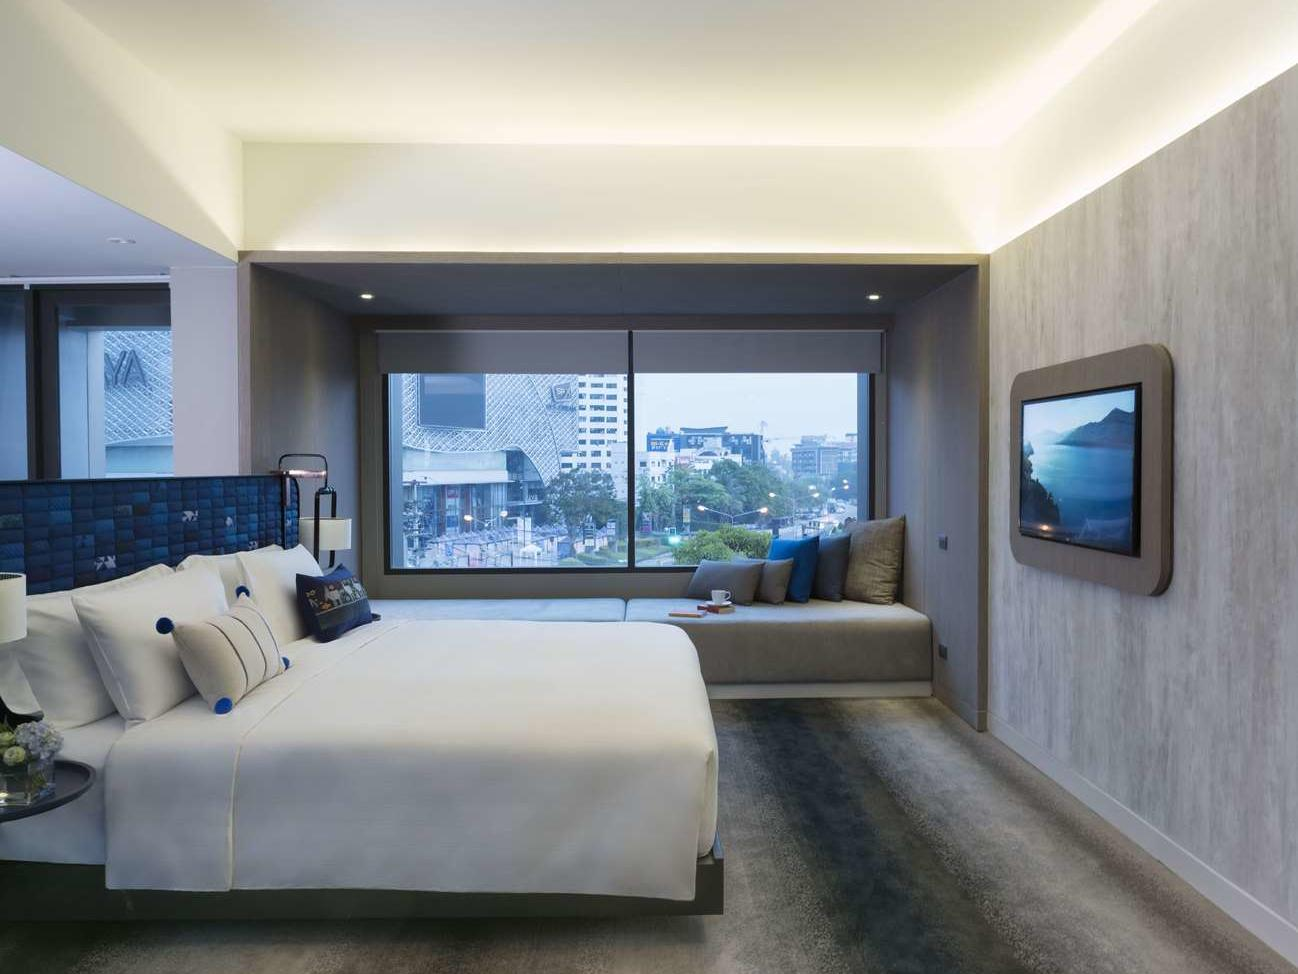 Premium Deluxe Corner room at U Hotels and Resorts